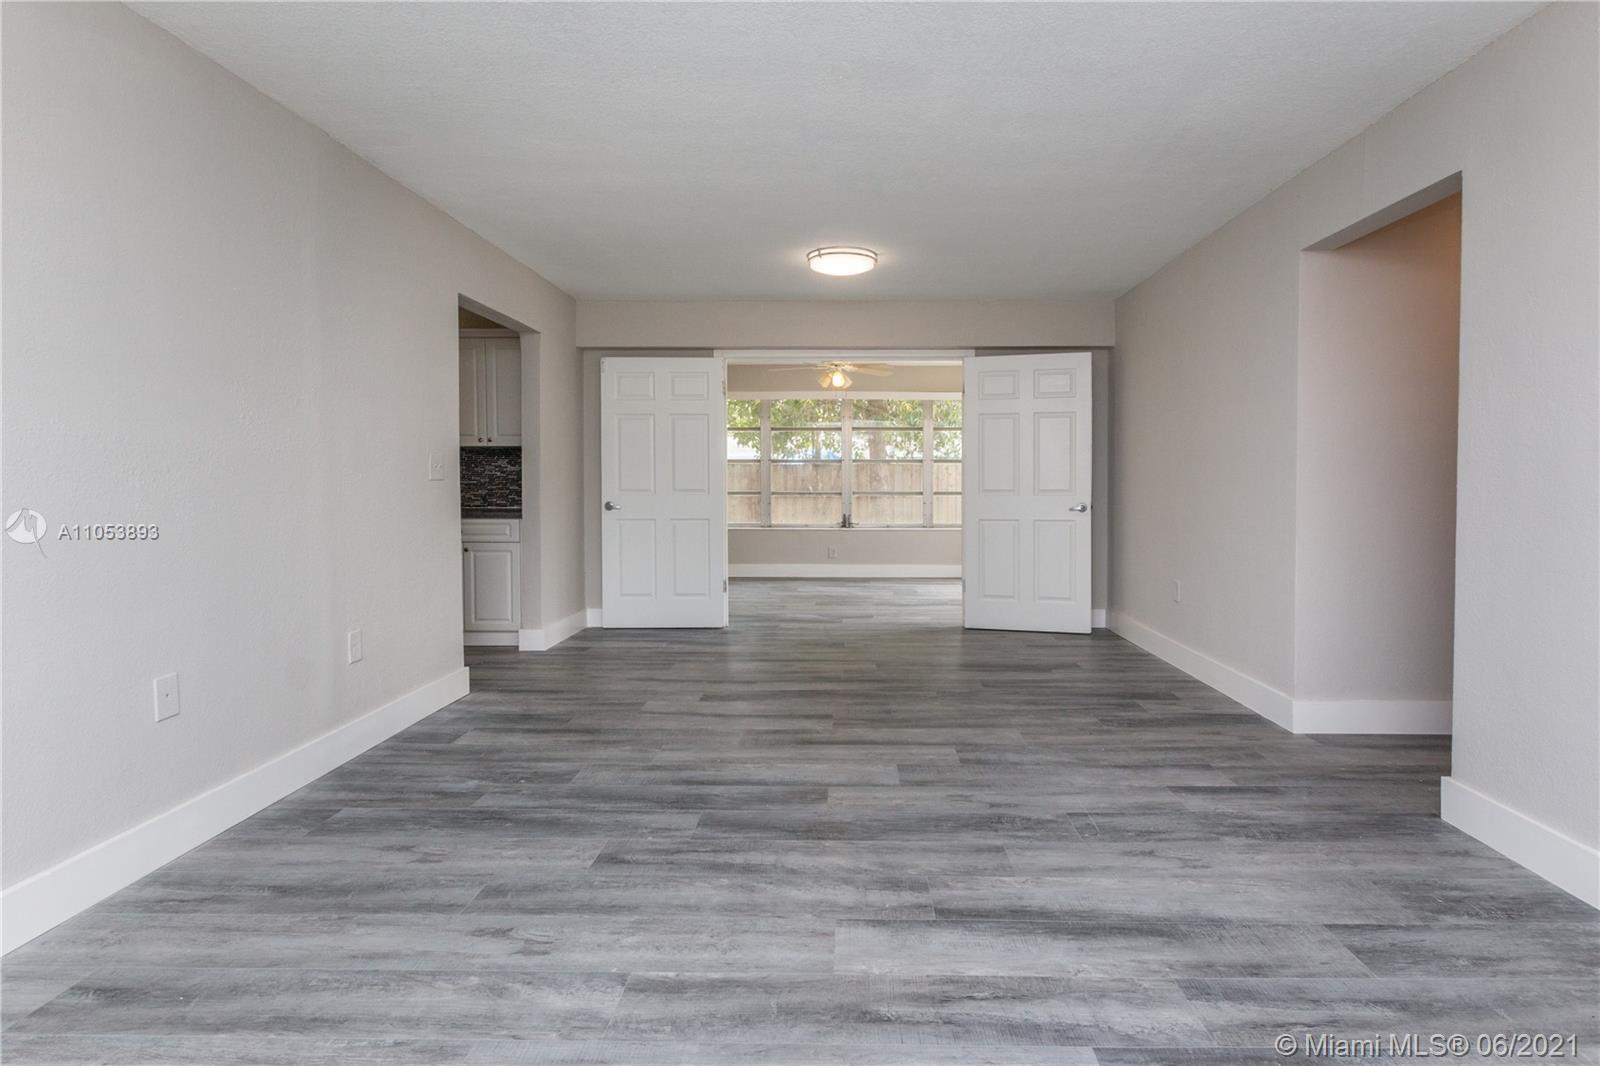 Boulevard Heights - 8131 NW 11th Ct, Pembroke Pines, FL 33024